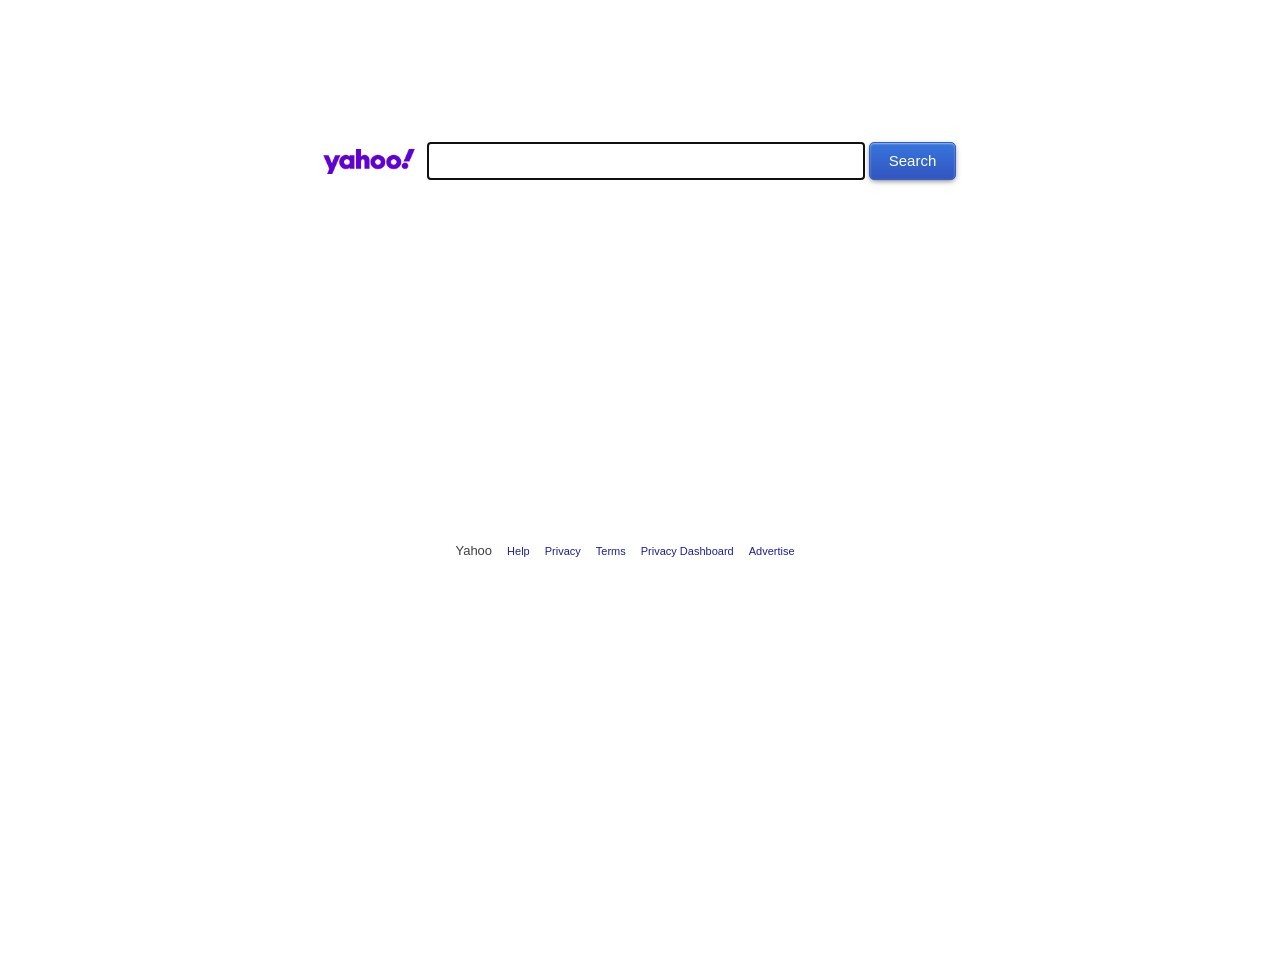 Yahoo! Search - Images